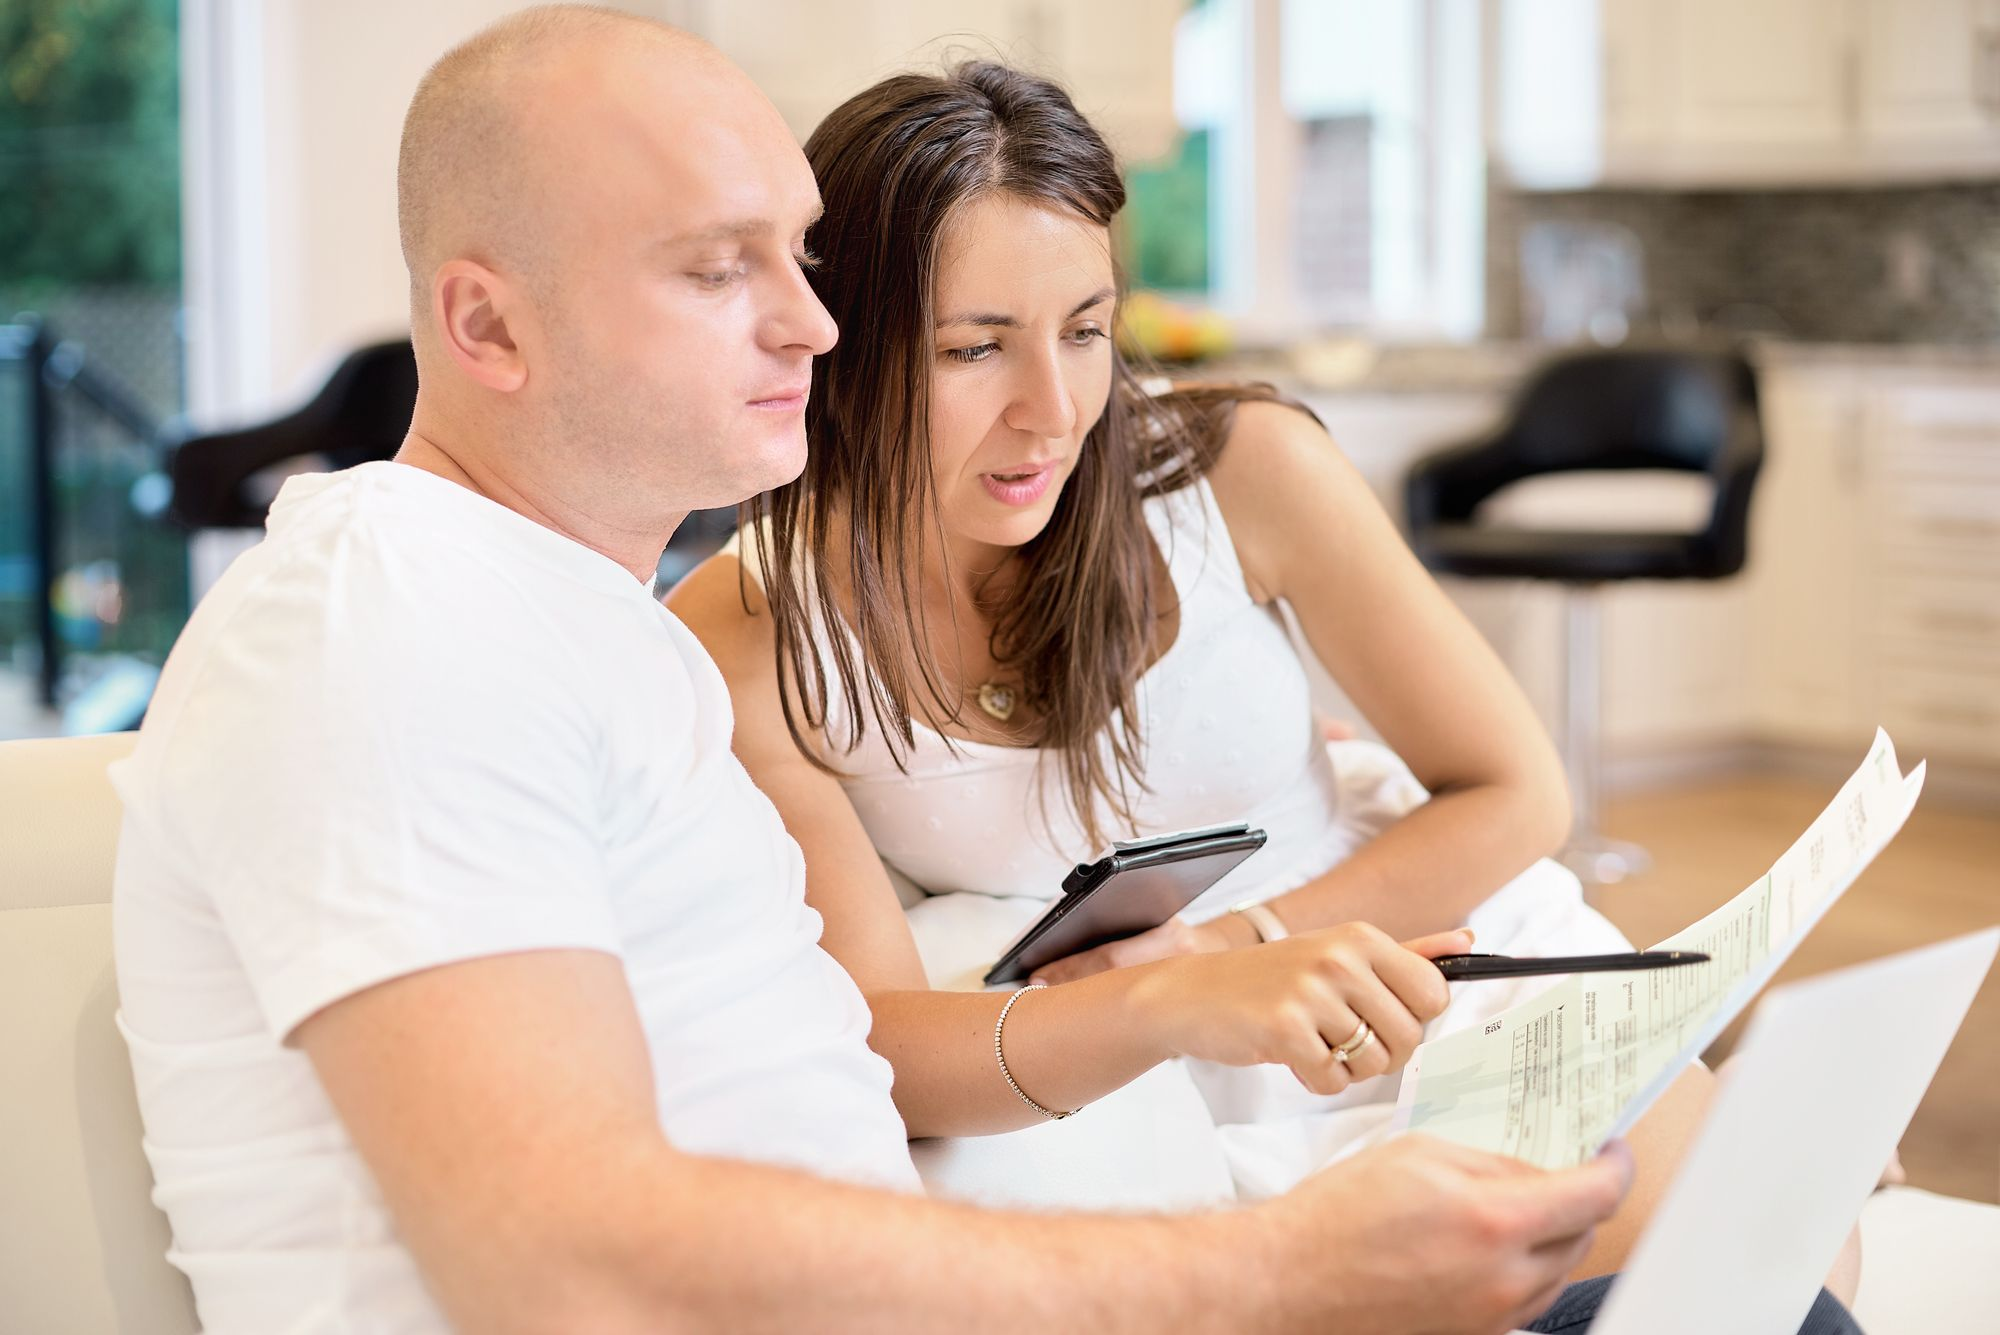 Interest Rate vs. APR: What's the Difference?